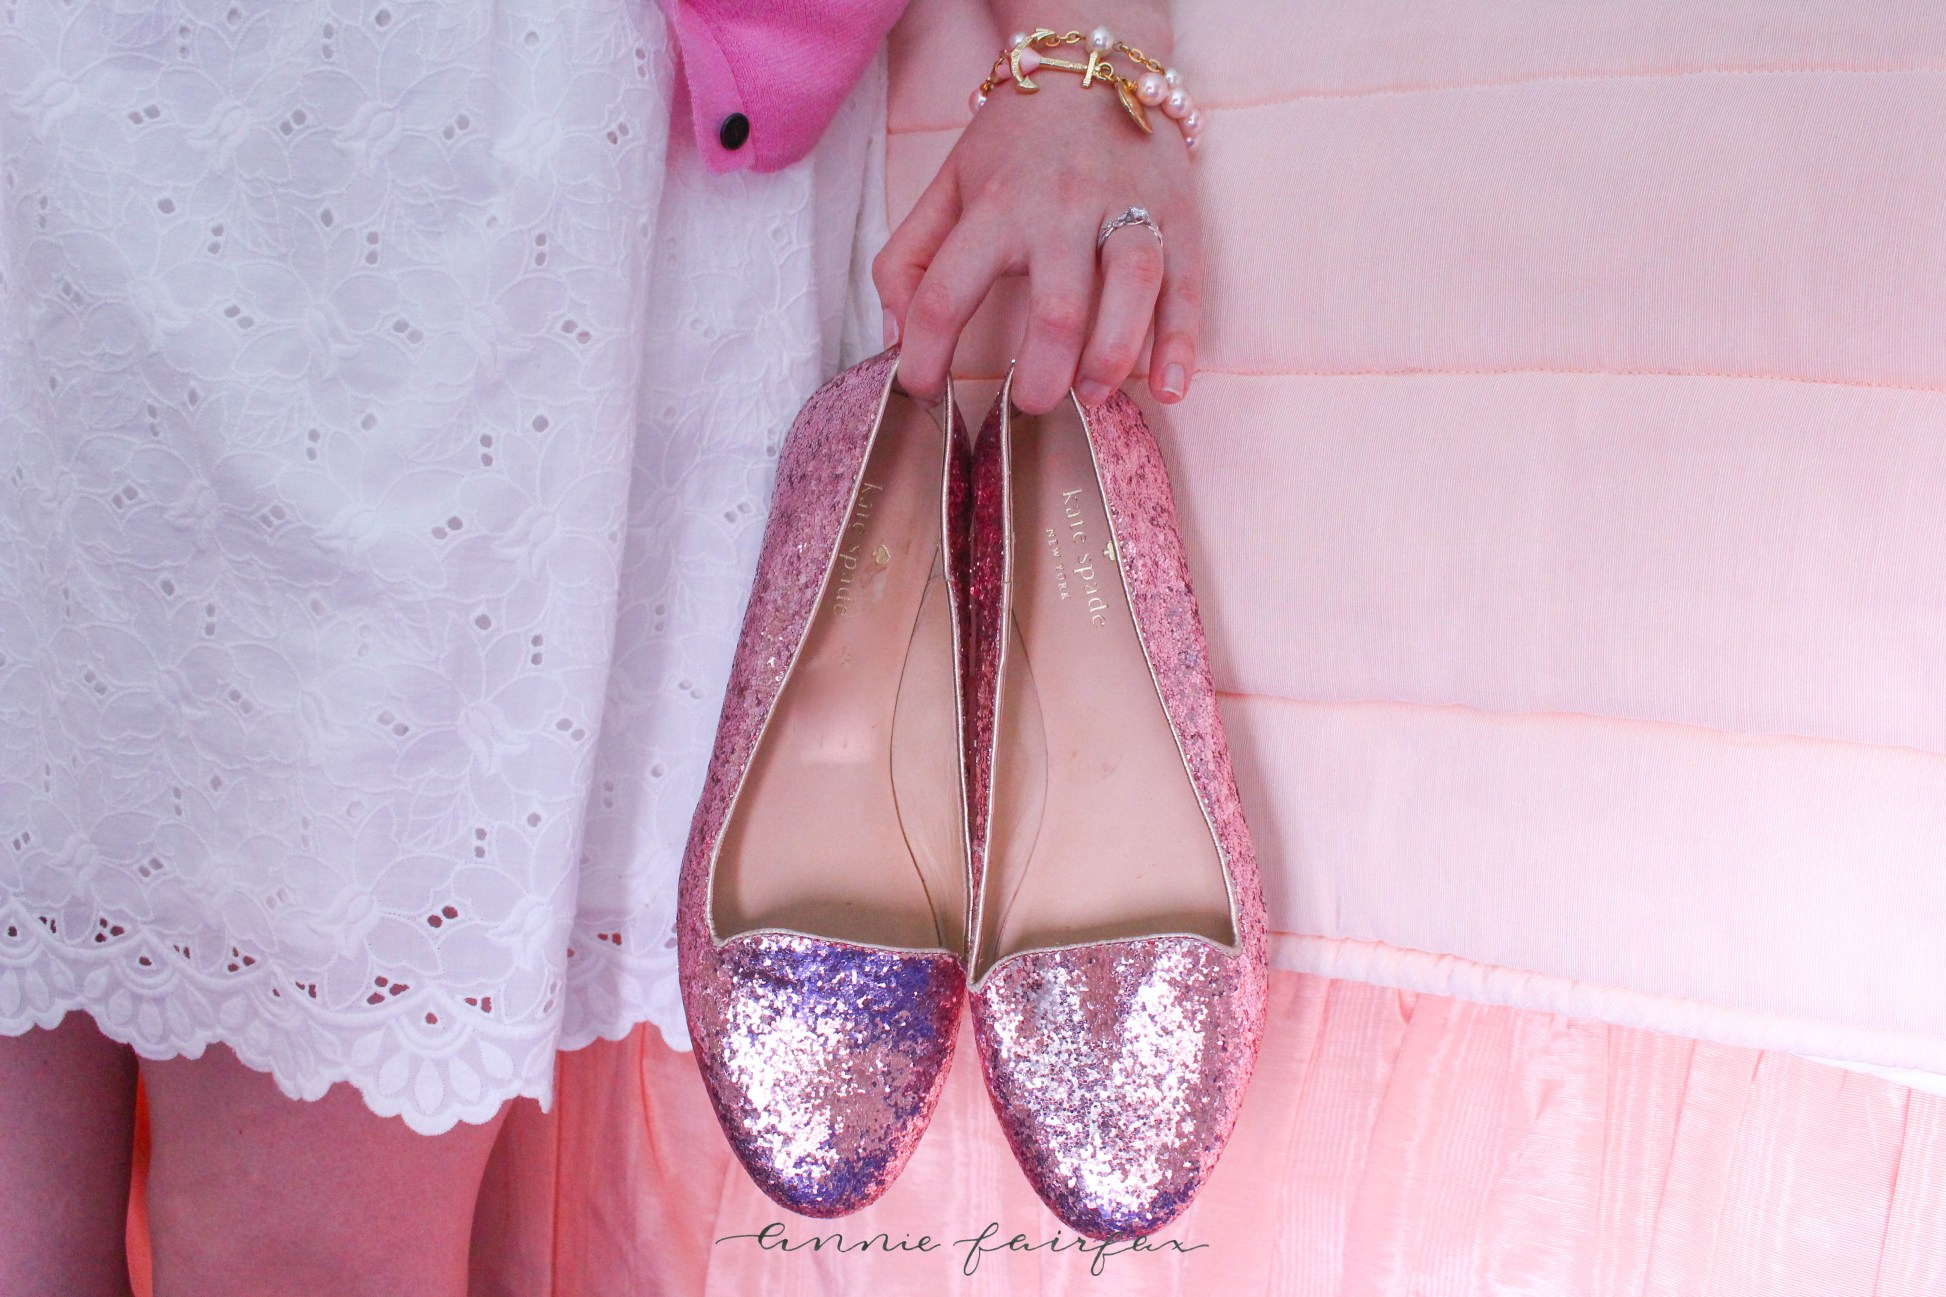 Pink and White Lilly Pulitzer Kiel James Patrick Grand Hotel Kate Spade Glitter Shoes